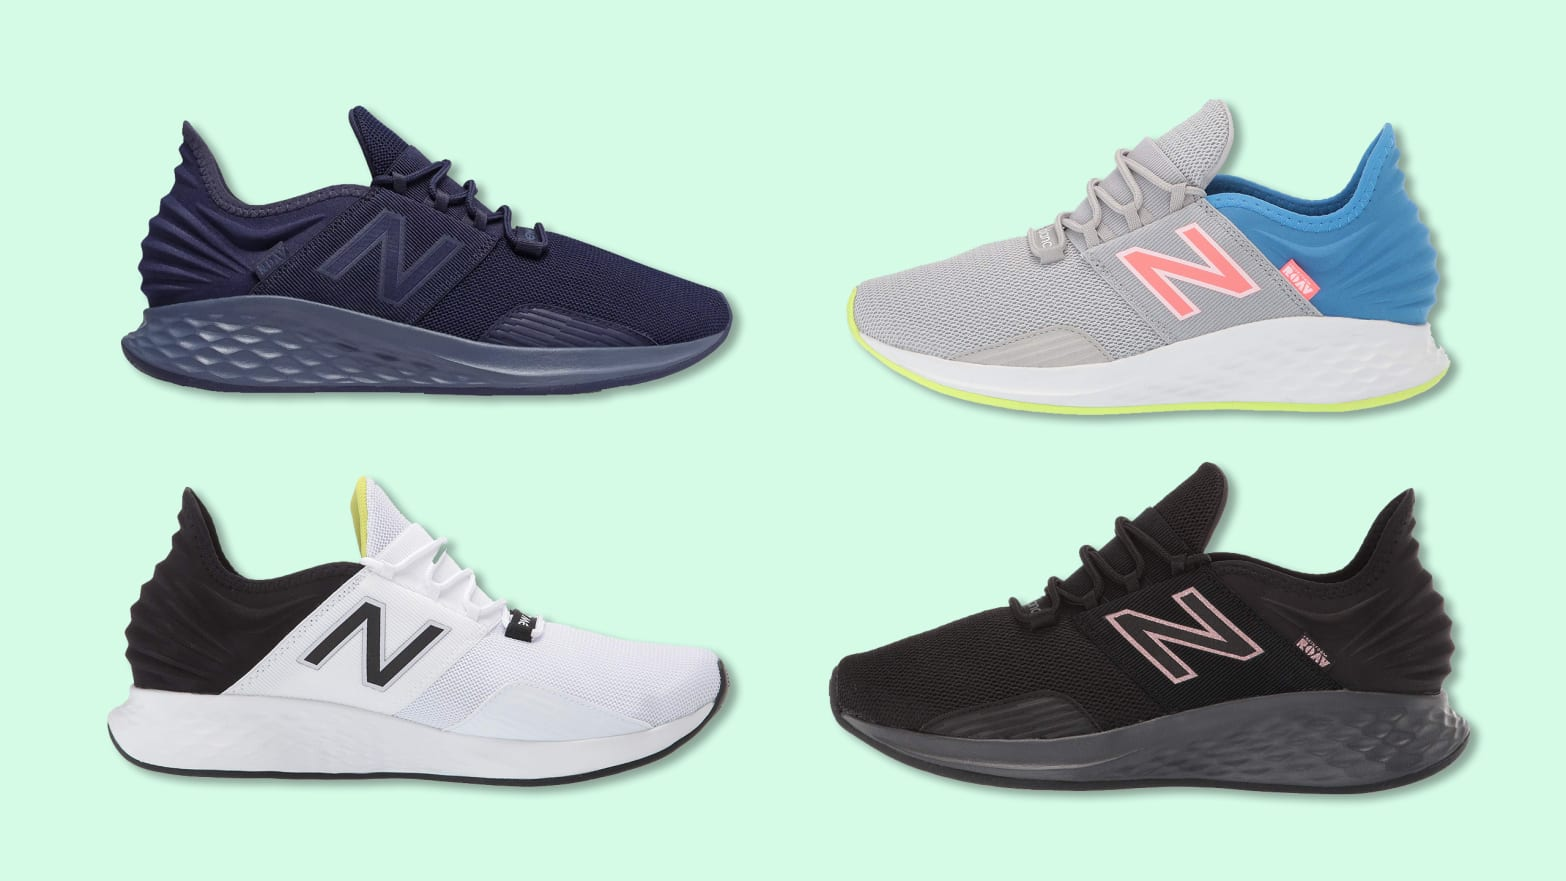 New Balance's New Fresh Foam ROAV Shoes Are Your Everyday